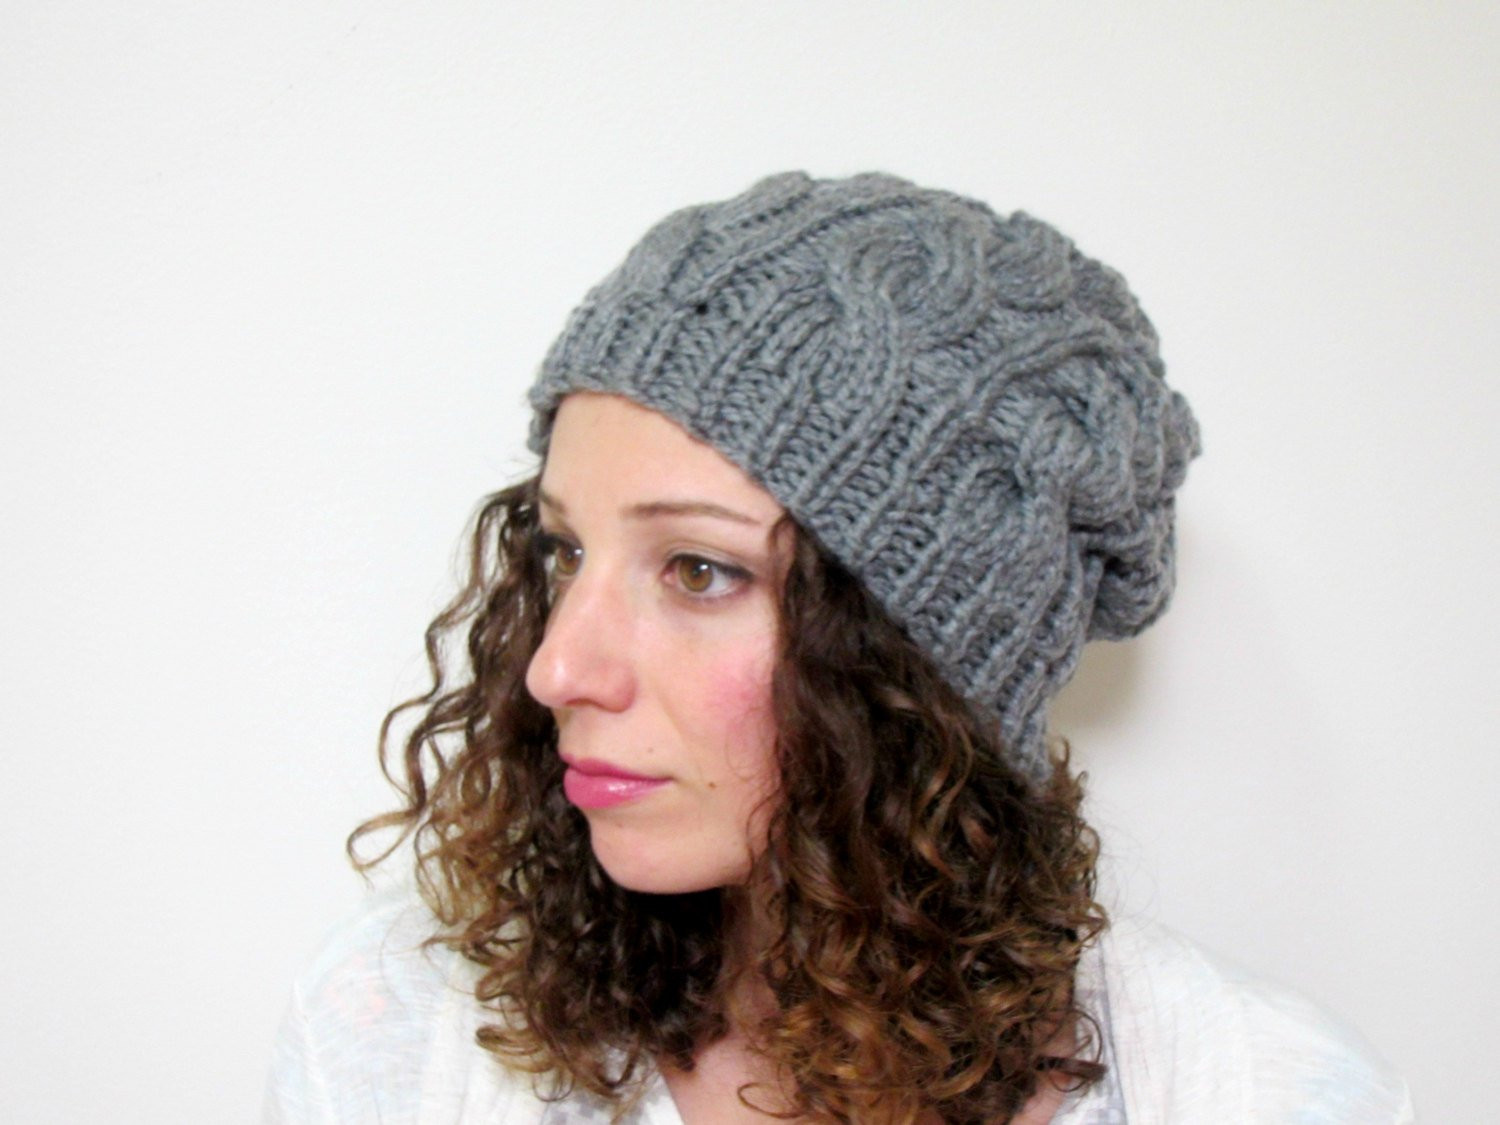 Womens Knit Hats Luxury Cable Knit Hat Womens Slouchy Beanie Gray Knitted Hats Etsy Of Innovative 50 Images Womens Knit Hats